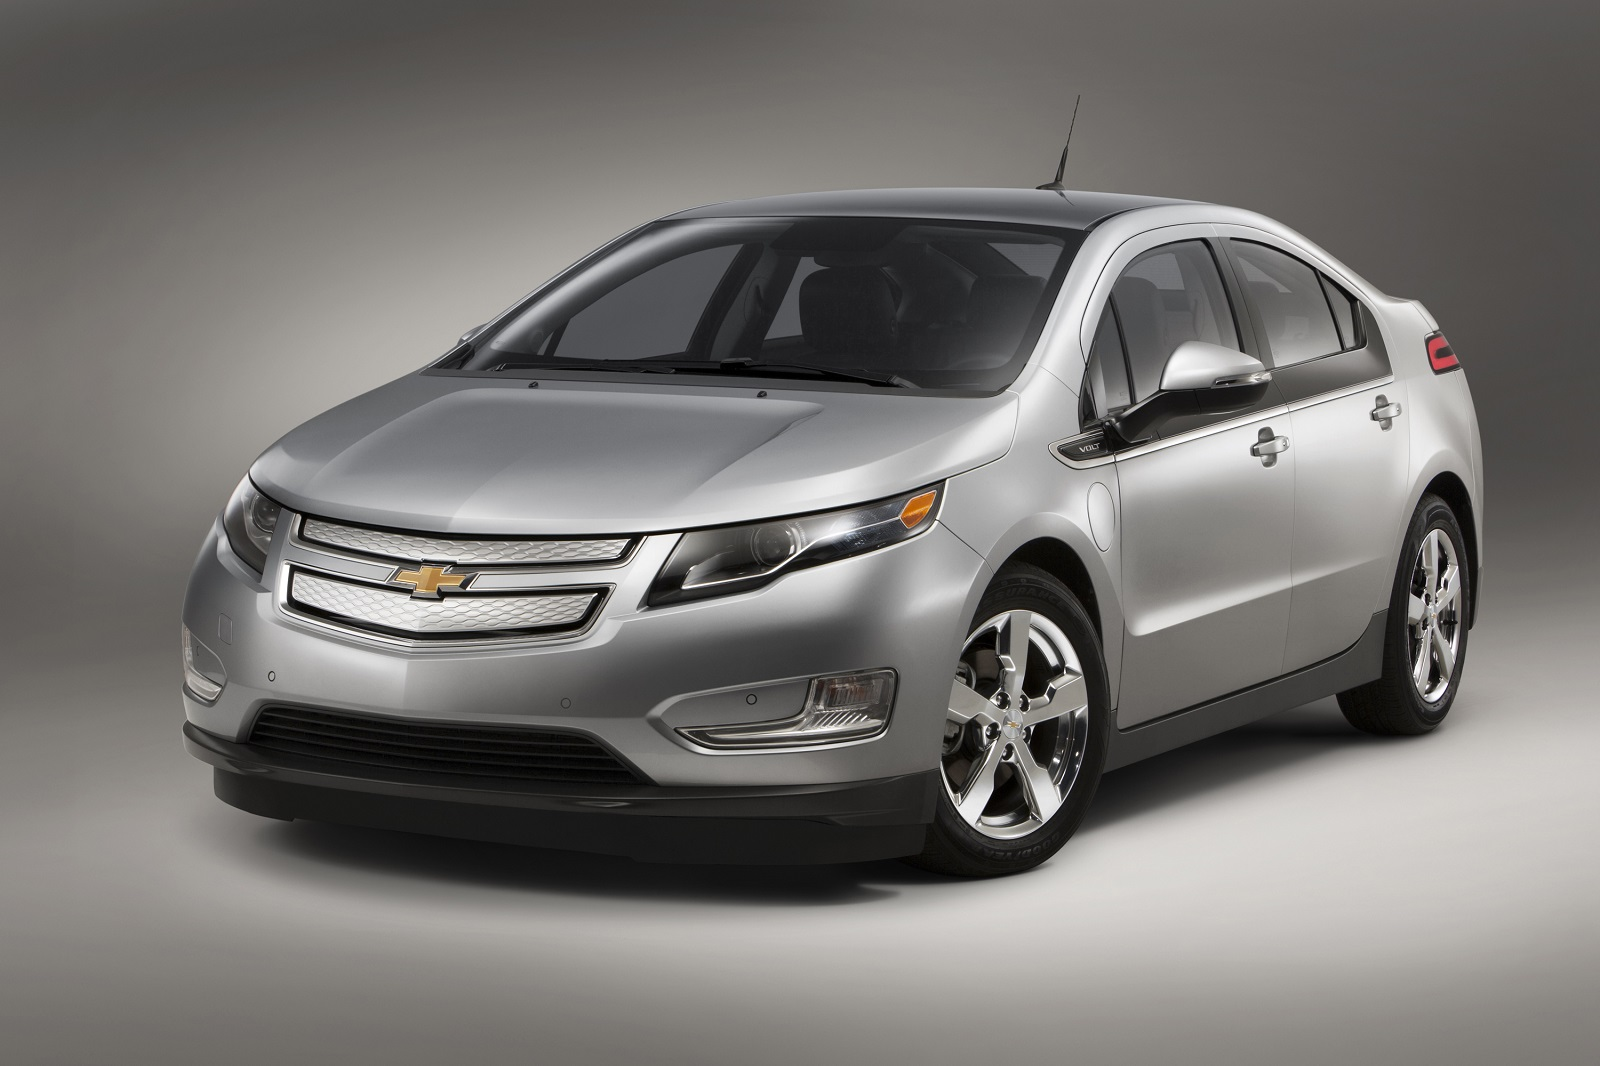 2015 Chevy Volt: Big Clearance Sale Before New 2016 Model ...